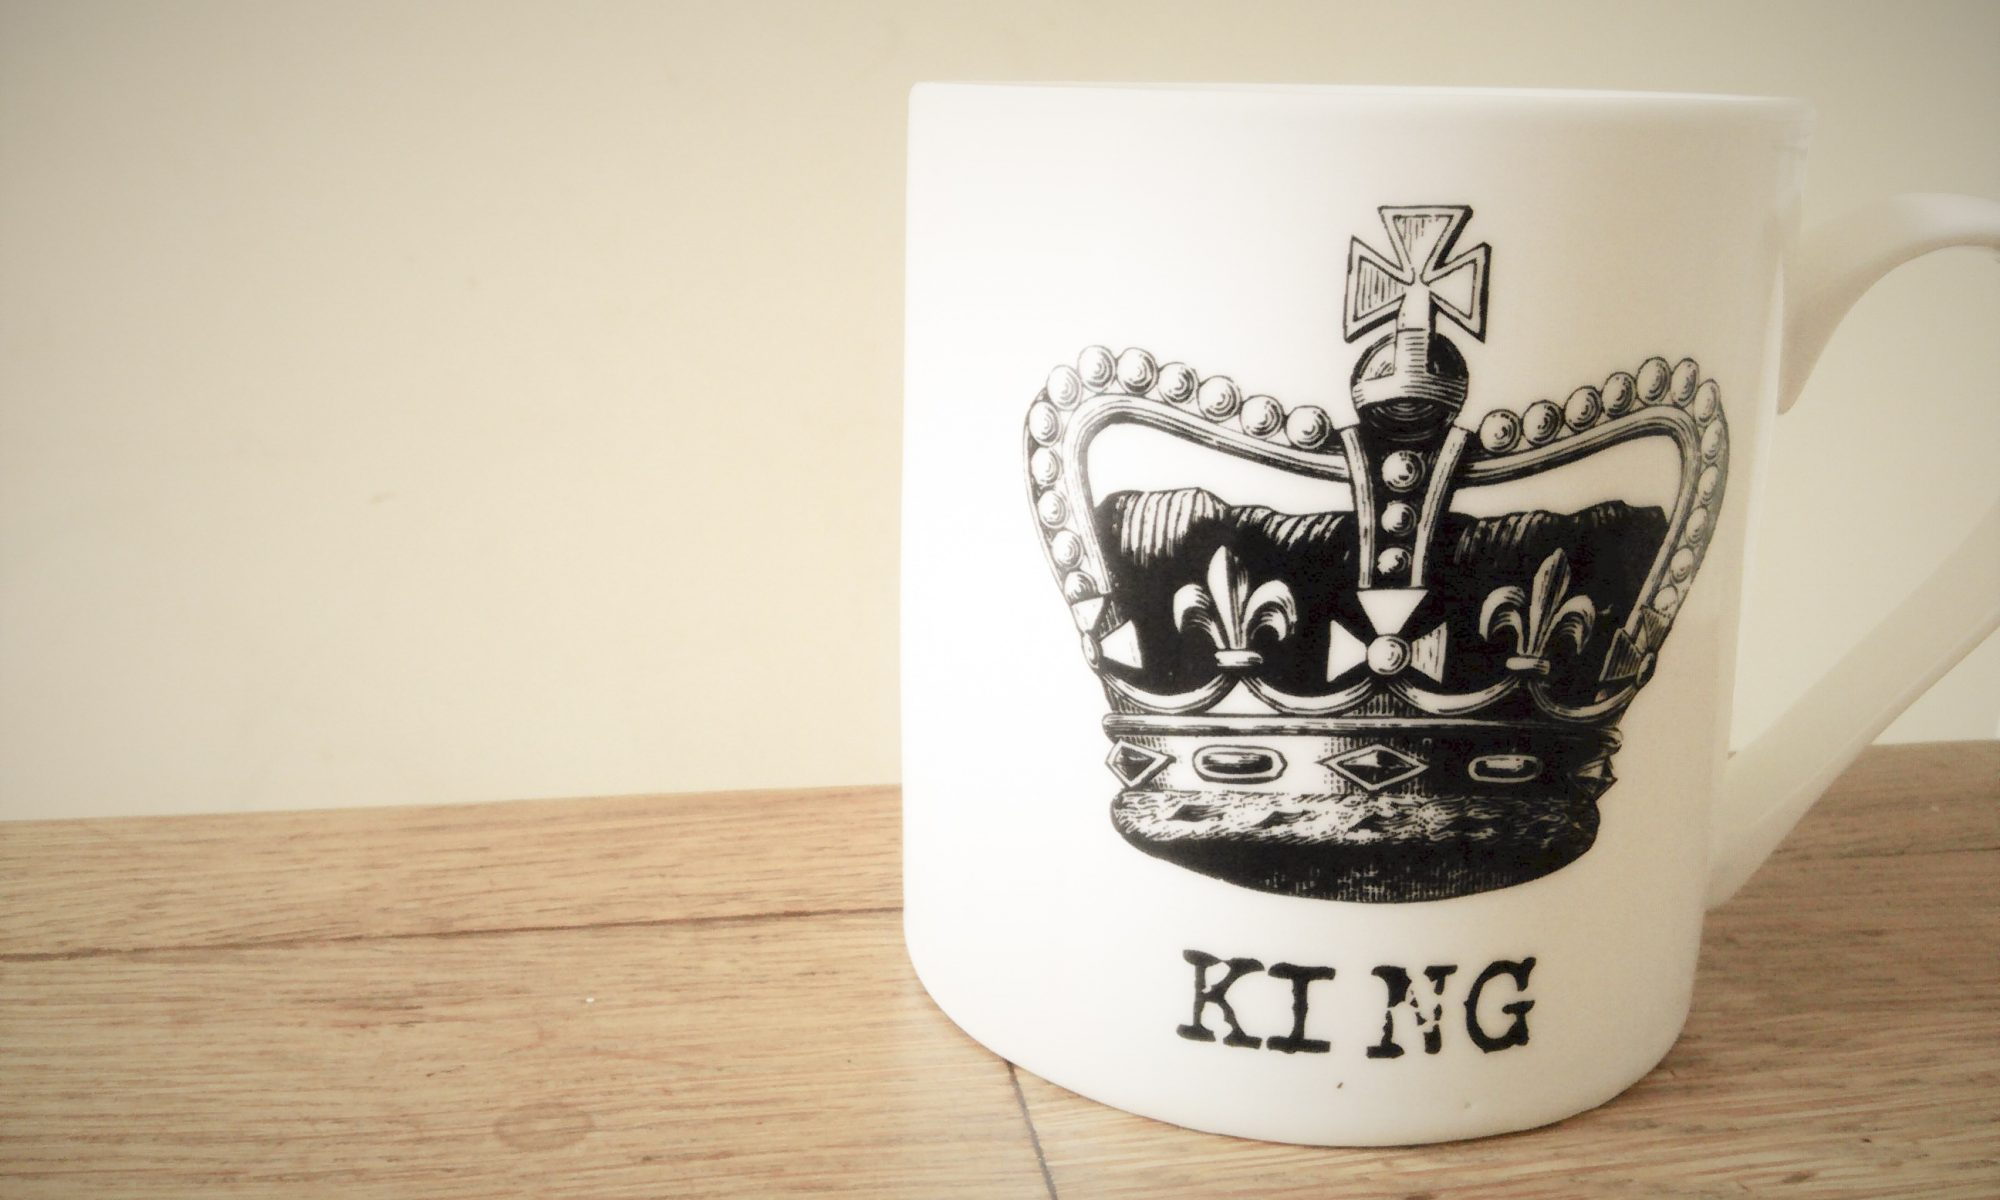 a white mug with a crown & words King